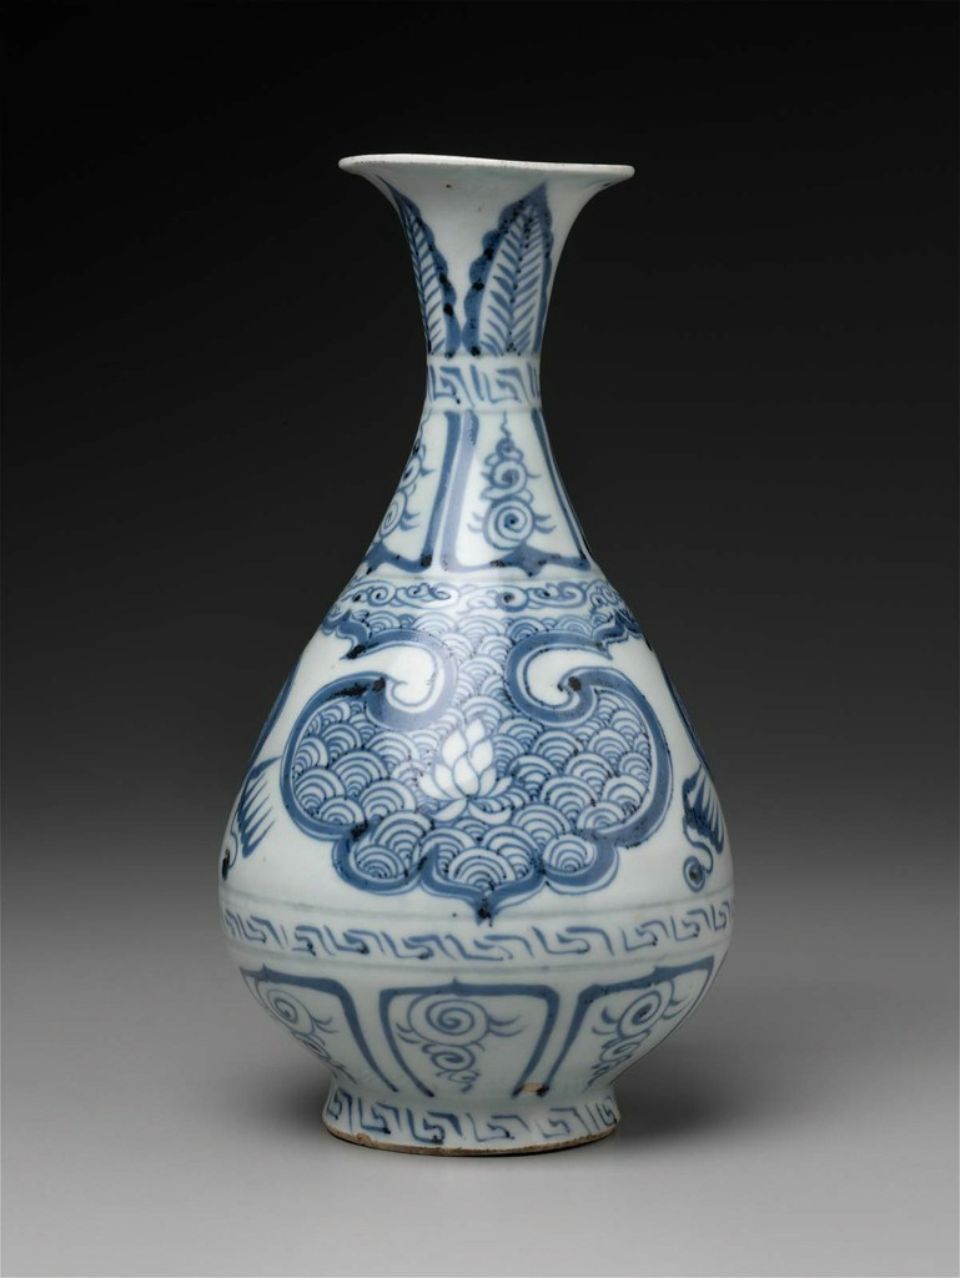 Yuhuchunping Shaped Vase Decorated With Leaves Amid Waves In Ruyi Shaped Windows Chinese Yuan Dynasty 14th Century Chinese Antiques Chinese Vase Blue China